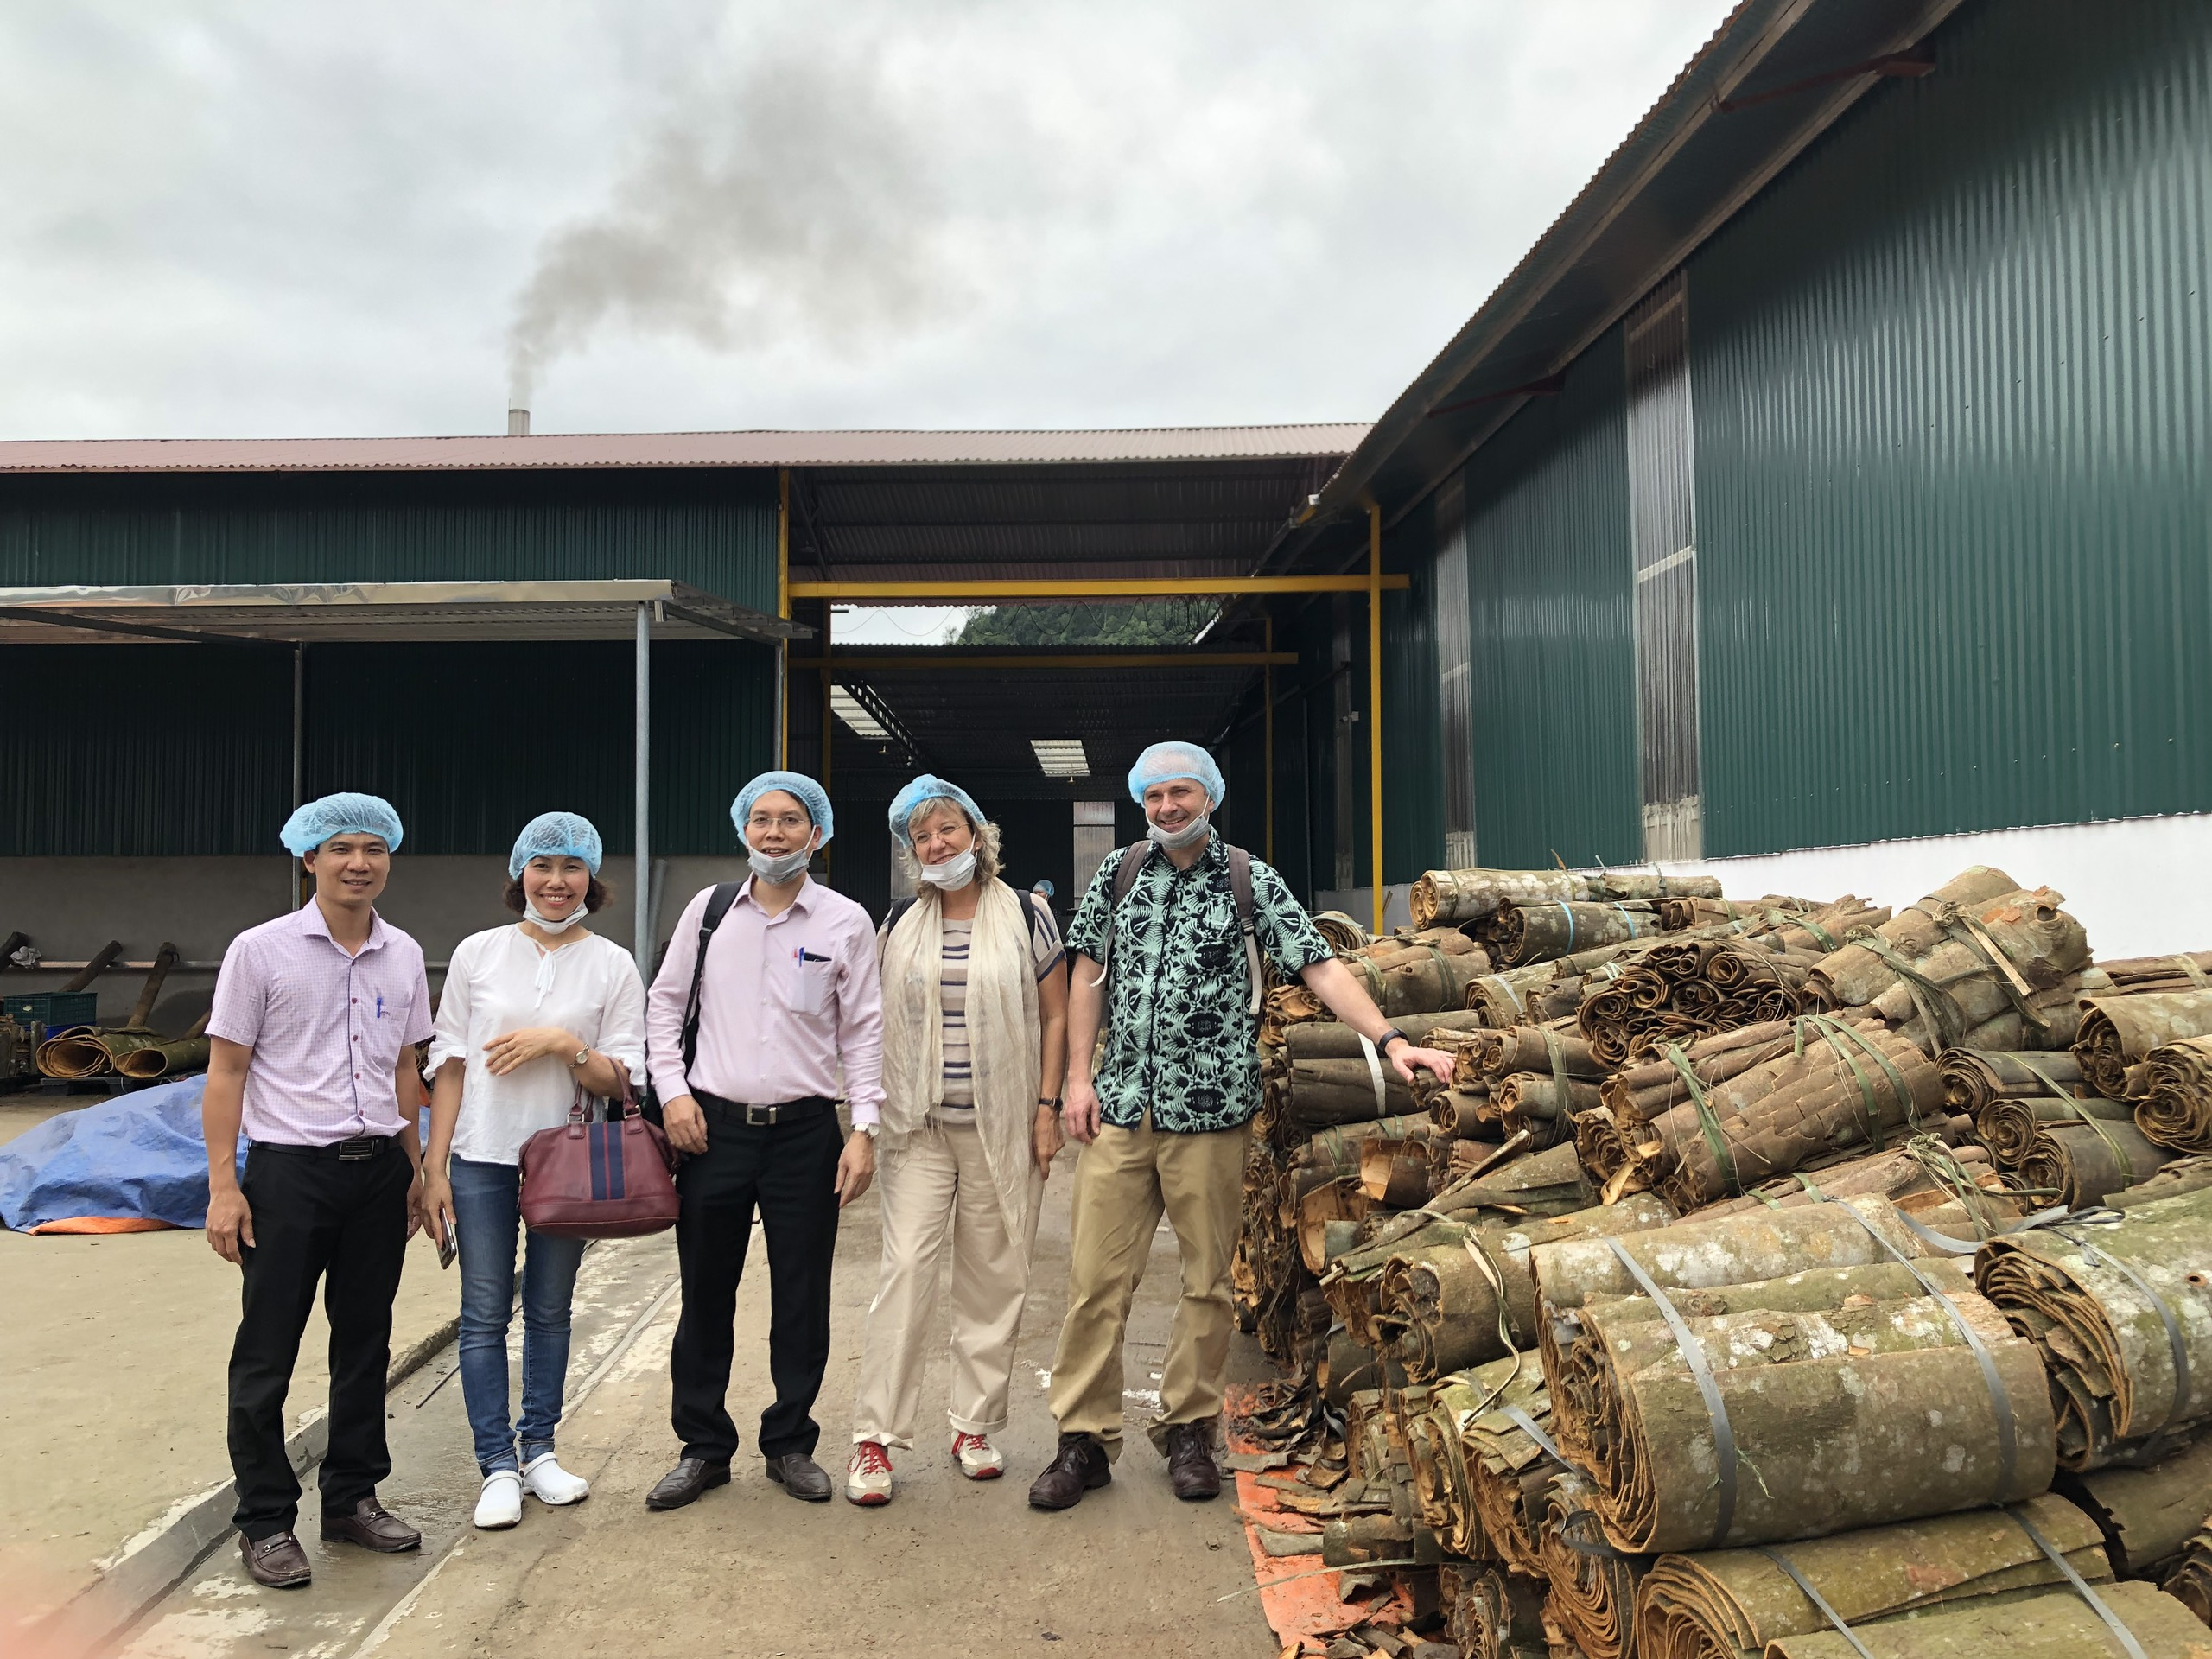 More resilient livelihoods and landscapes for the forest producers on organic cinnamon production in Dao Thinh commune, Tran Yen District, Yen bai province